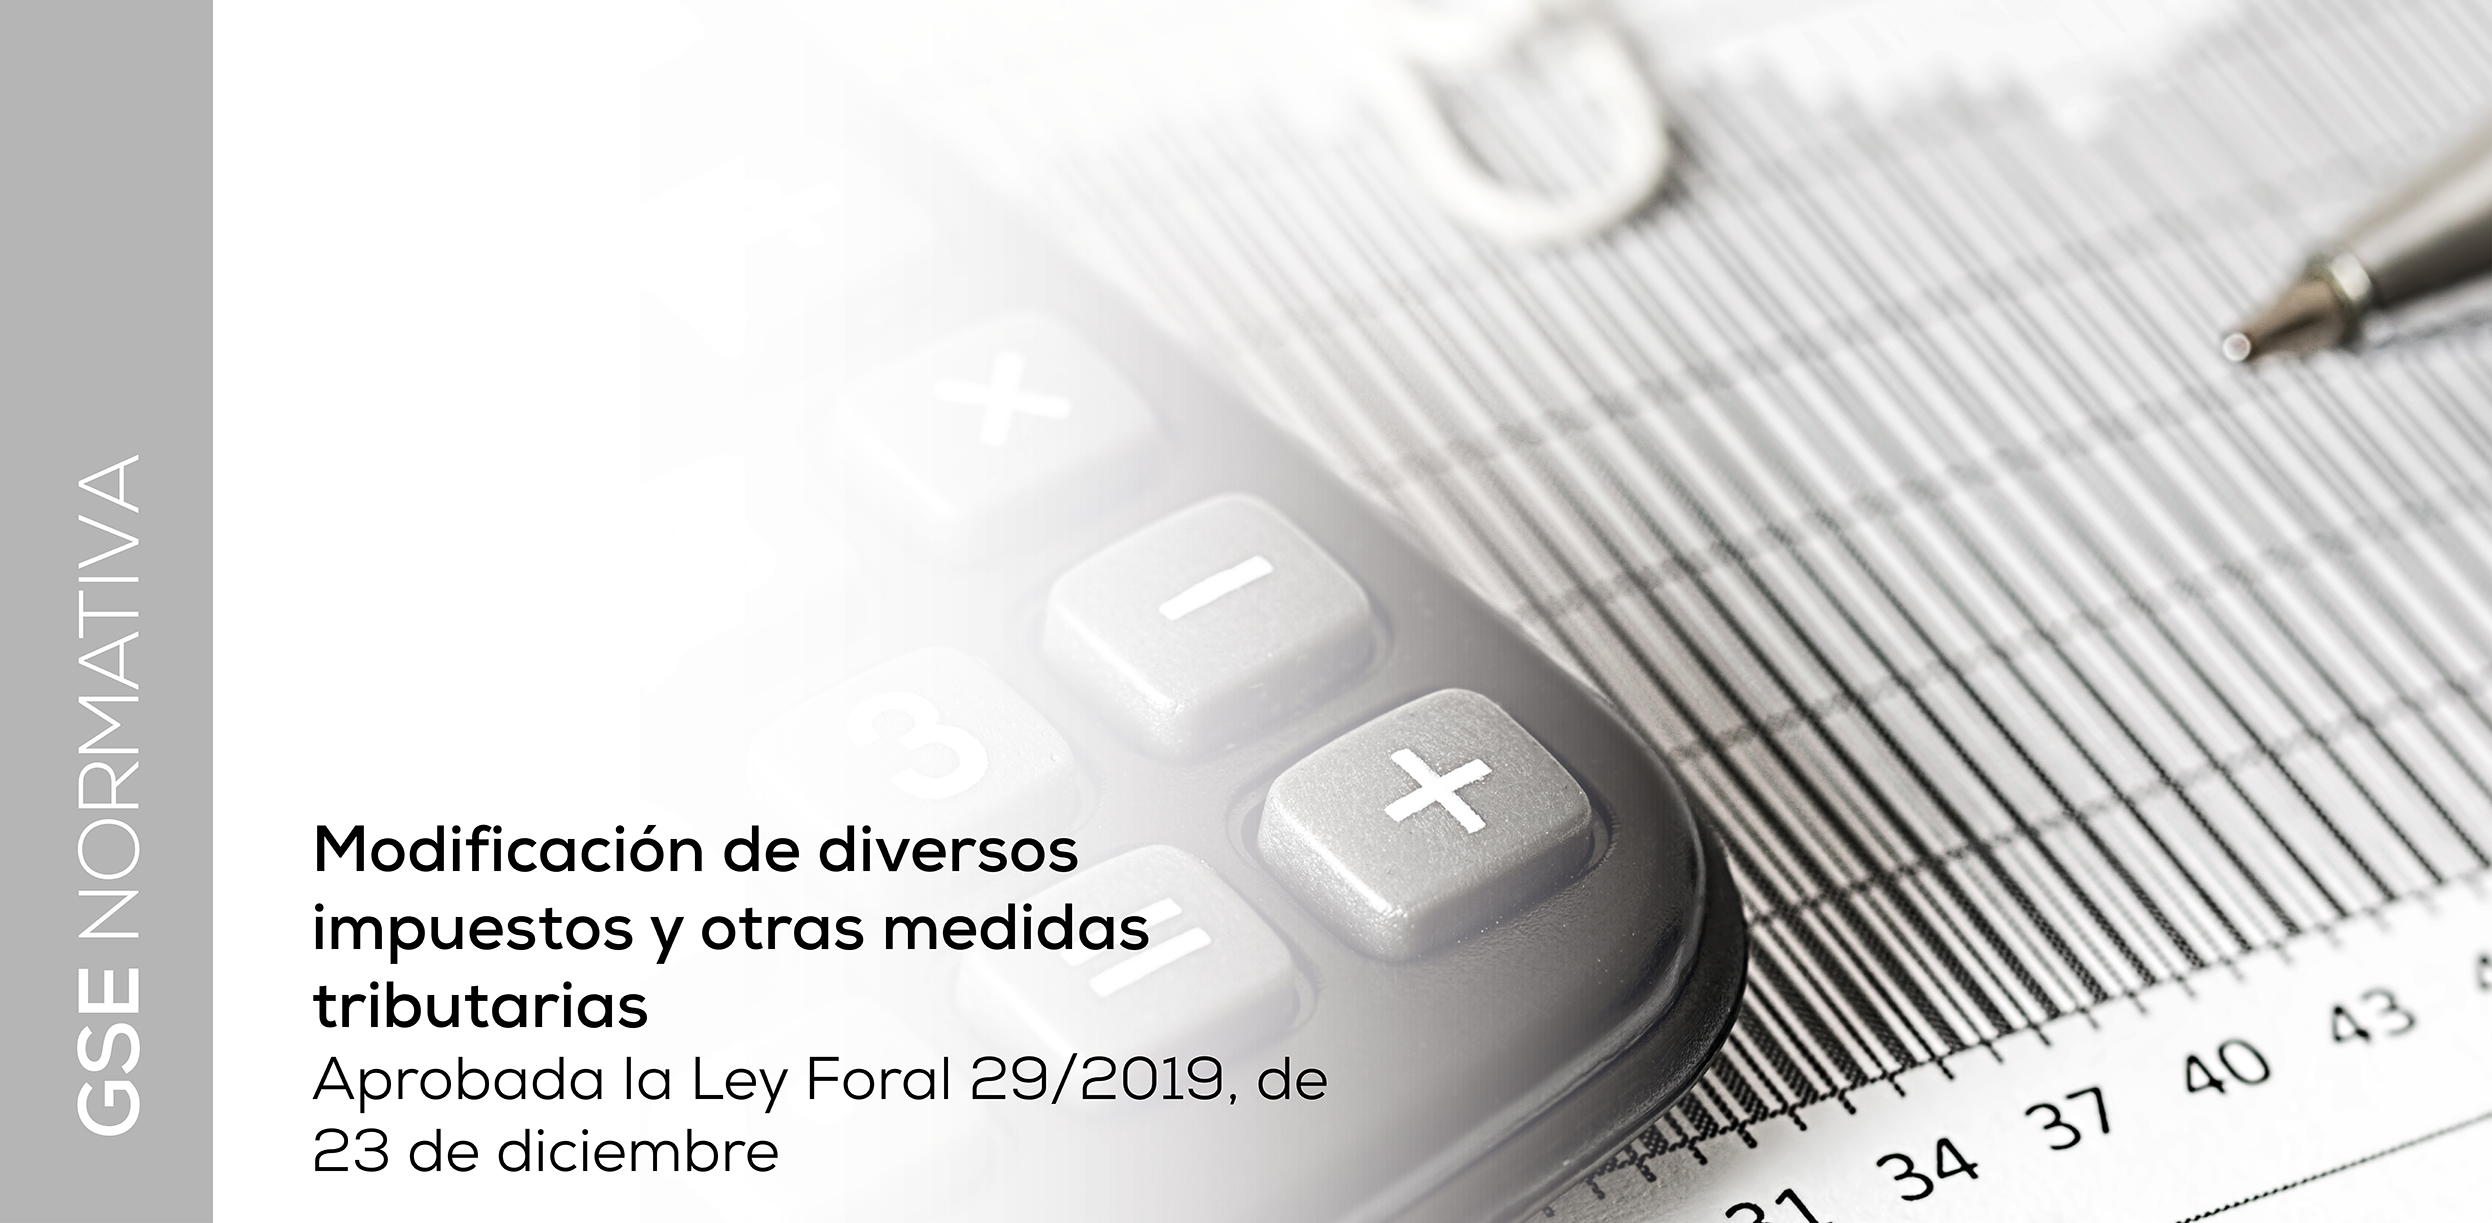 Ley Foral 29/2019